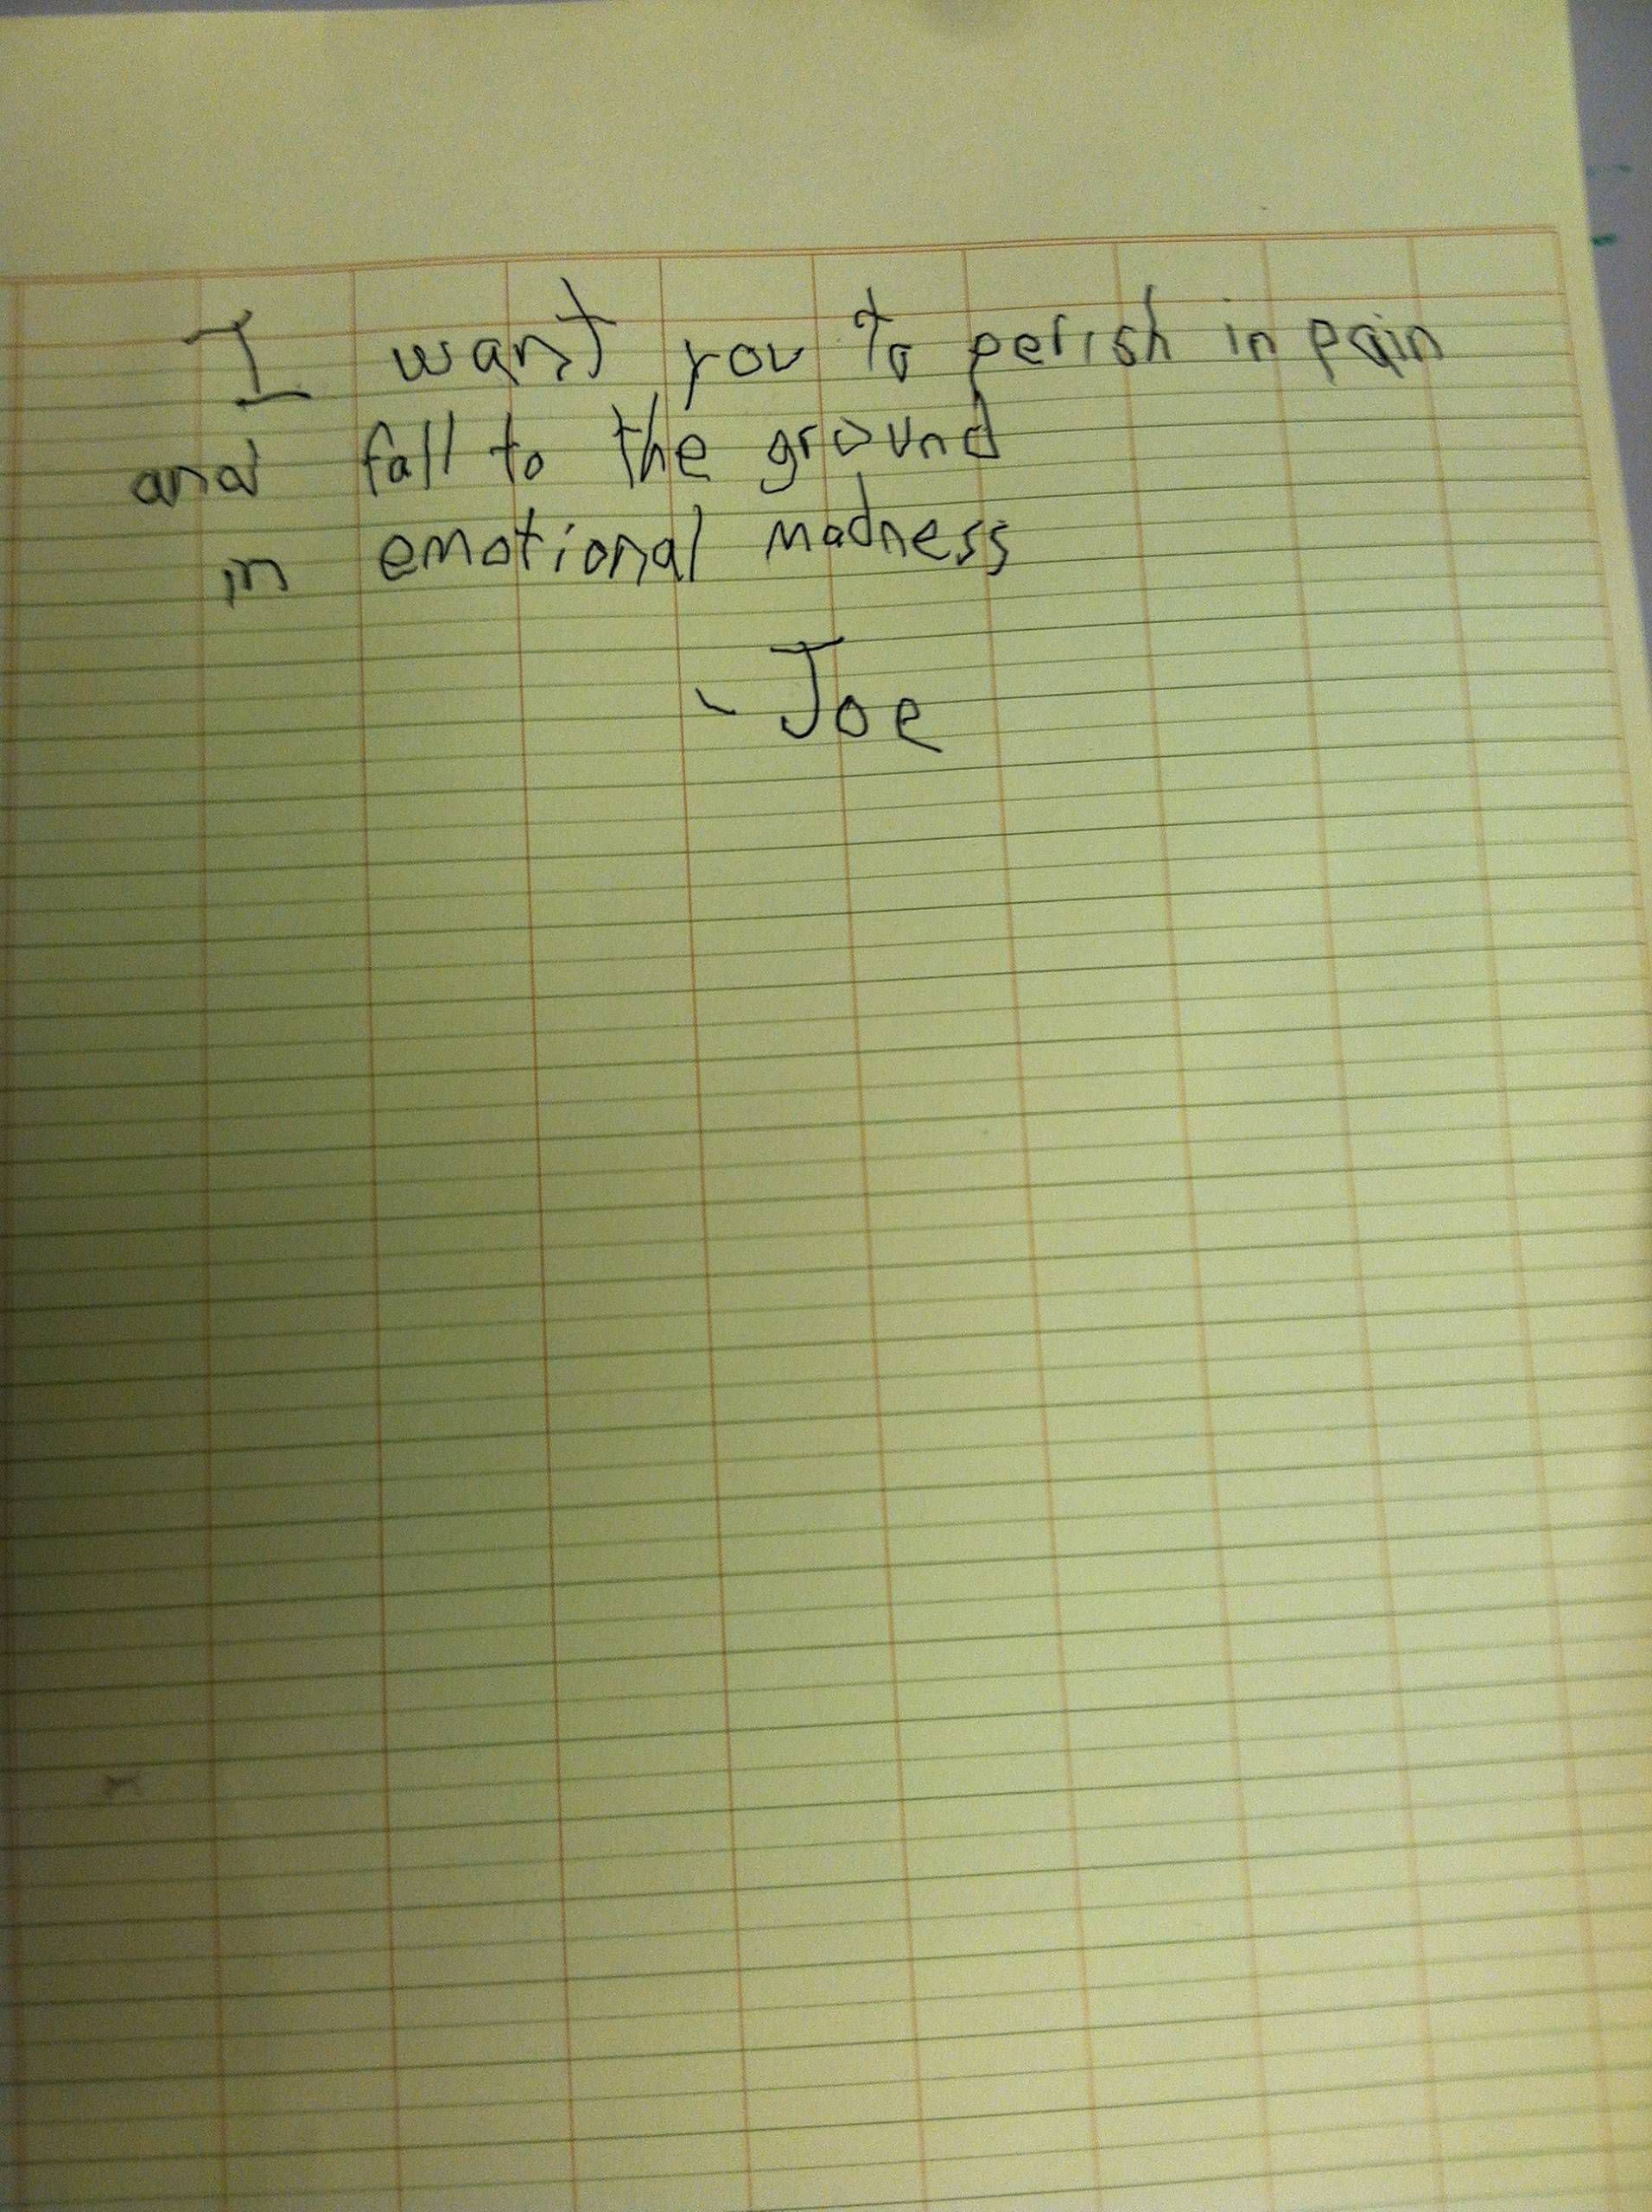 My friend's autistic son wrote this to the girls who threw sand at him during recess  // funny pictures - funny photos - funny images - funny pics - funny quotes - #lol #humor #funnypictures